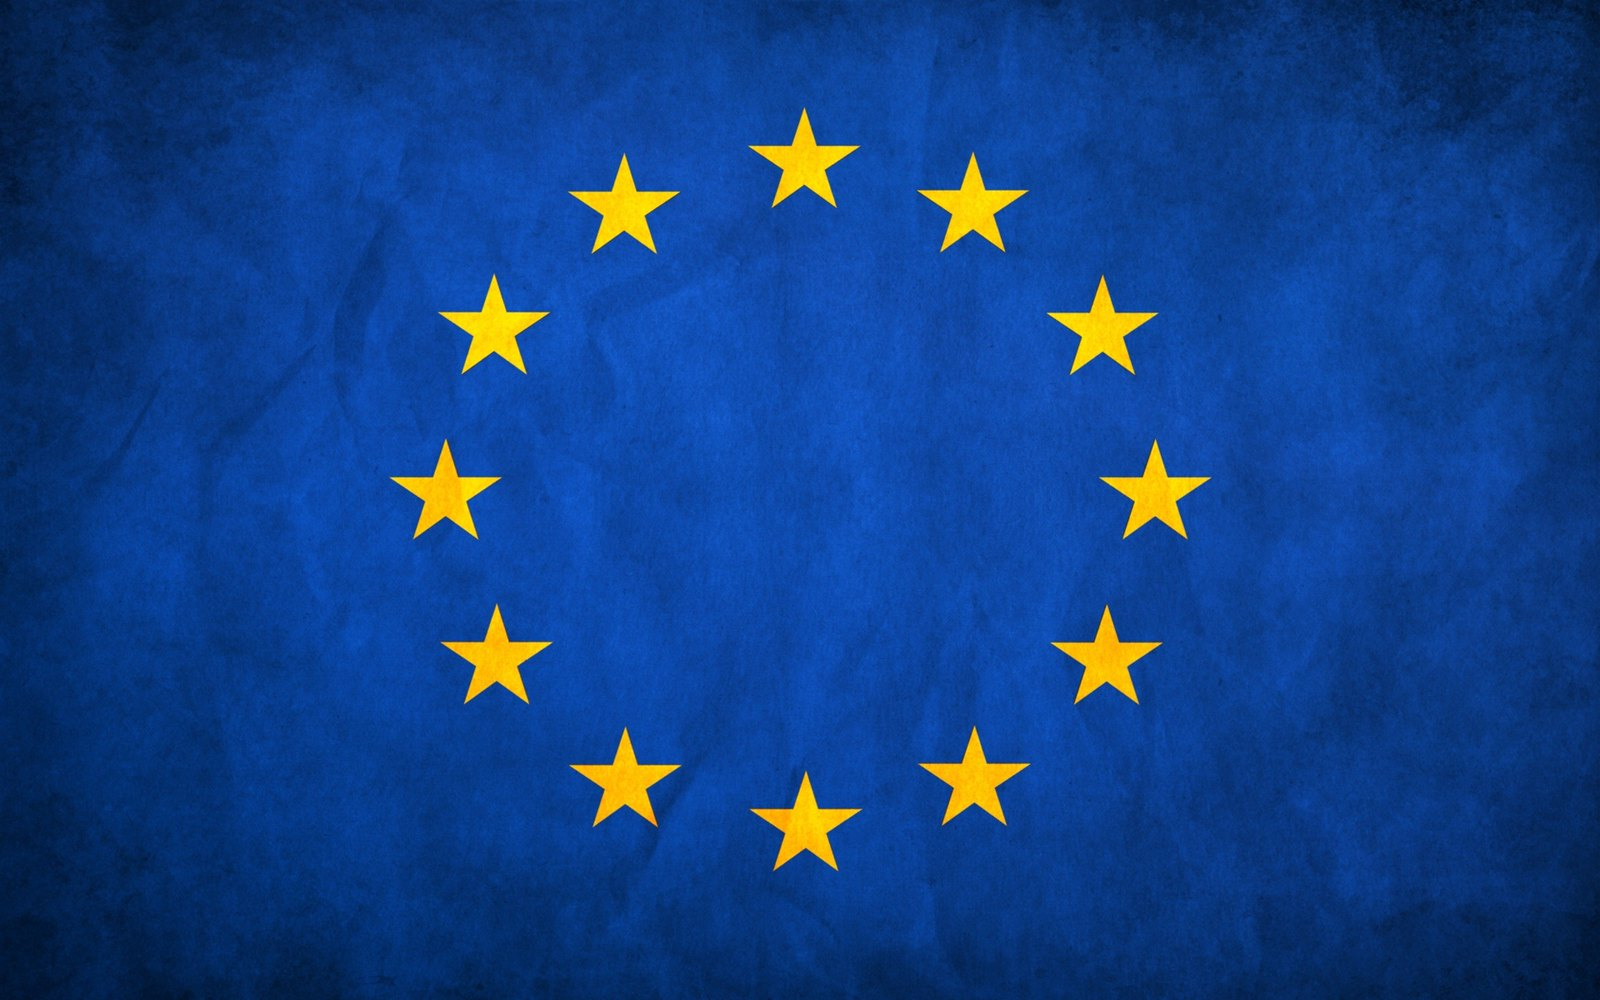 european_union_flag-1483895-1920x1200